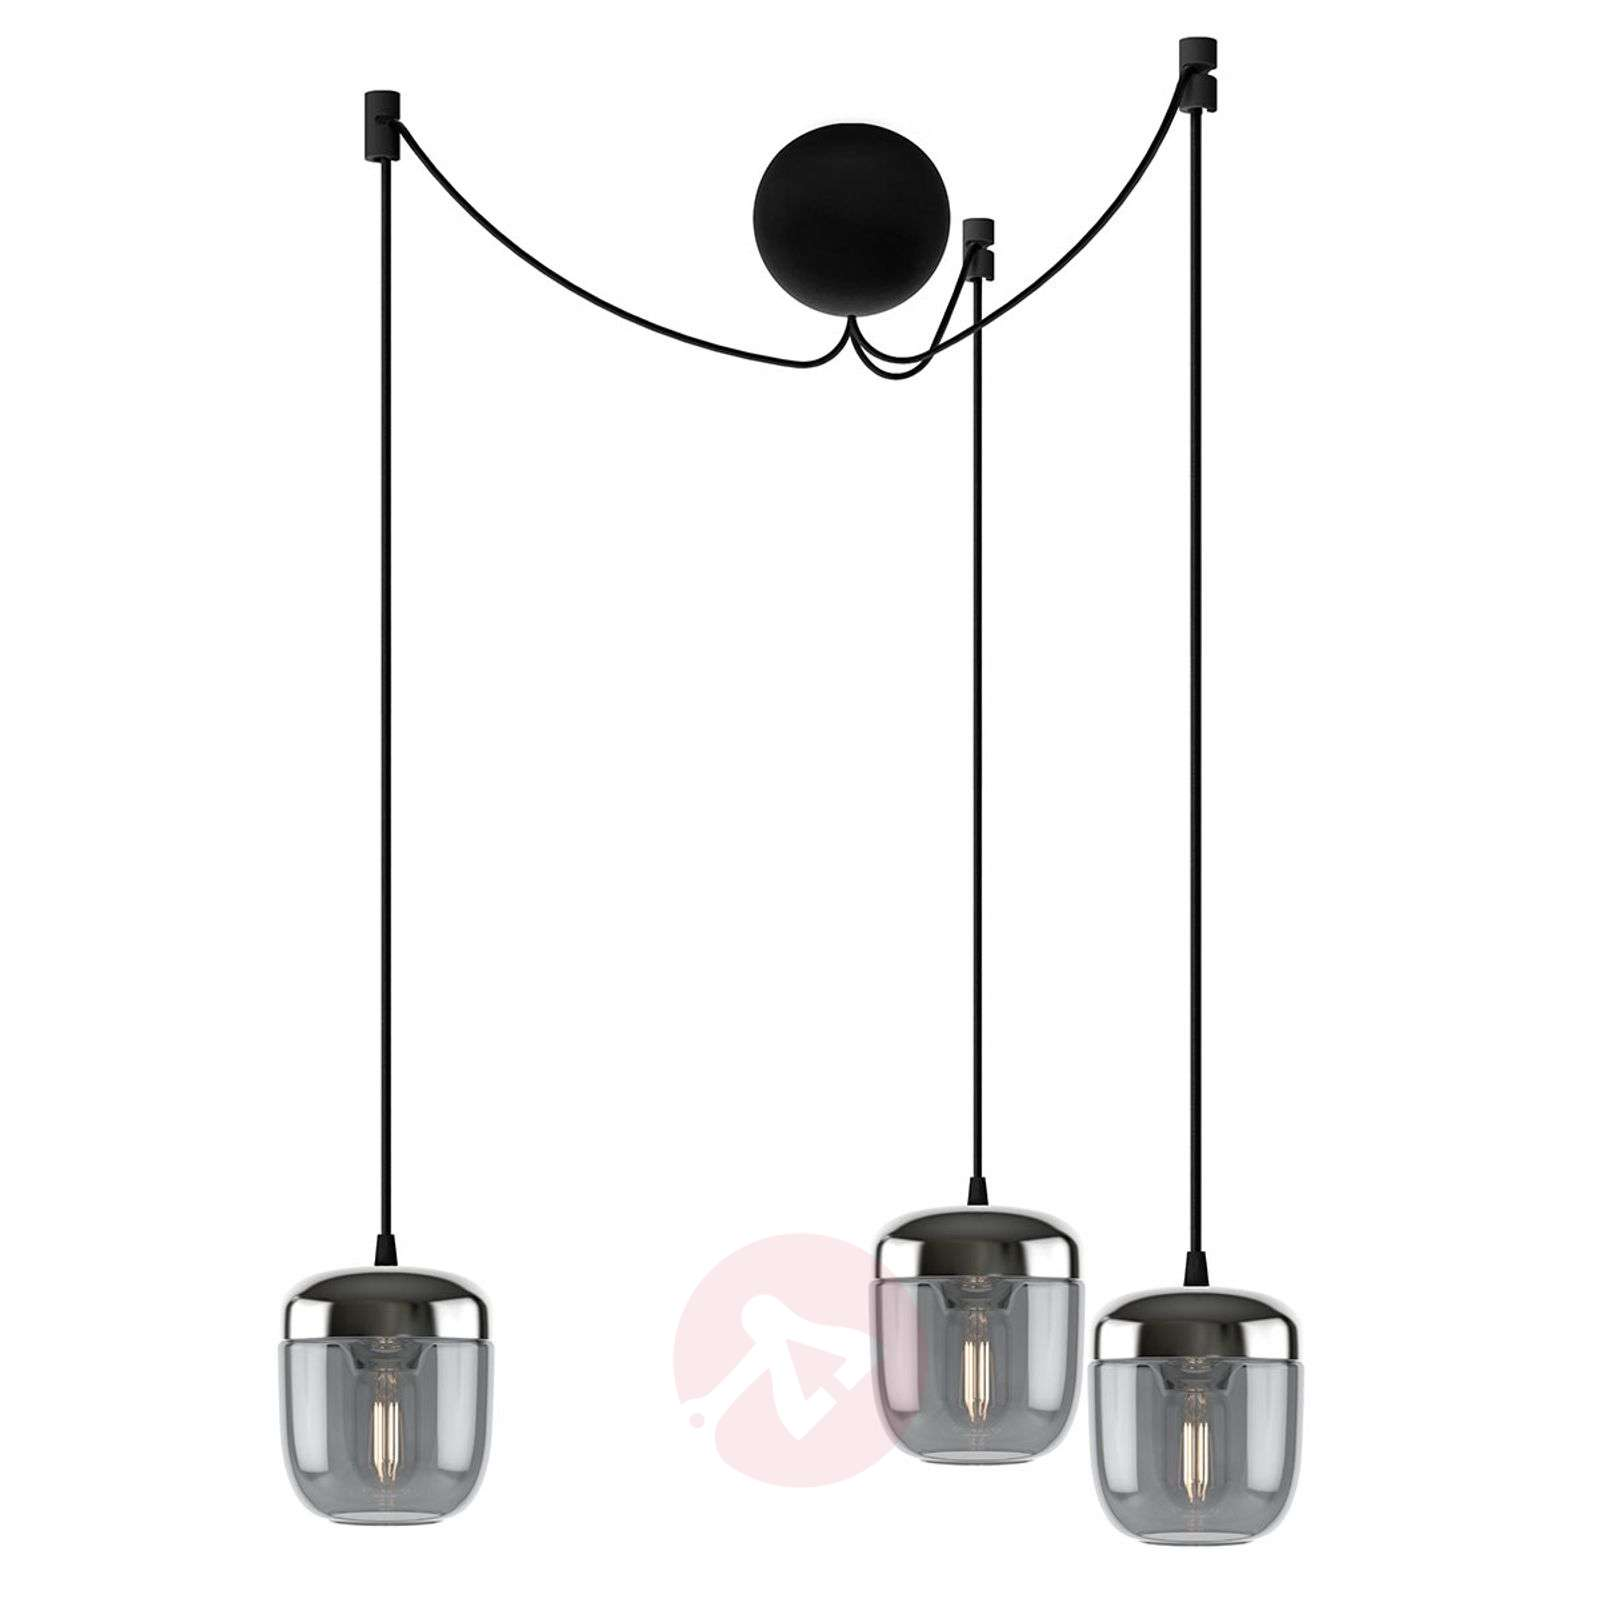 UMAGE Acorn hanging lamp 3-bulb smoky grey steel-9521221-01